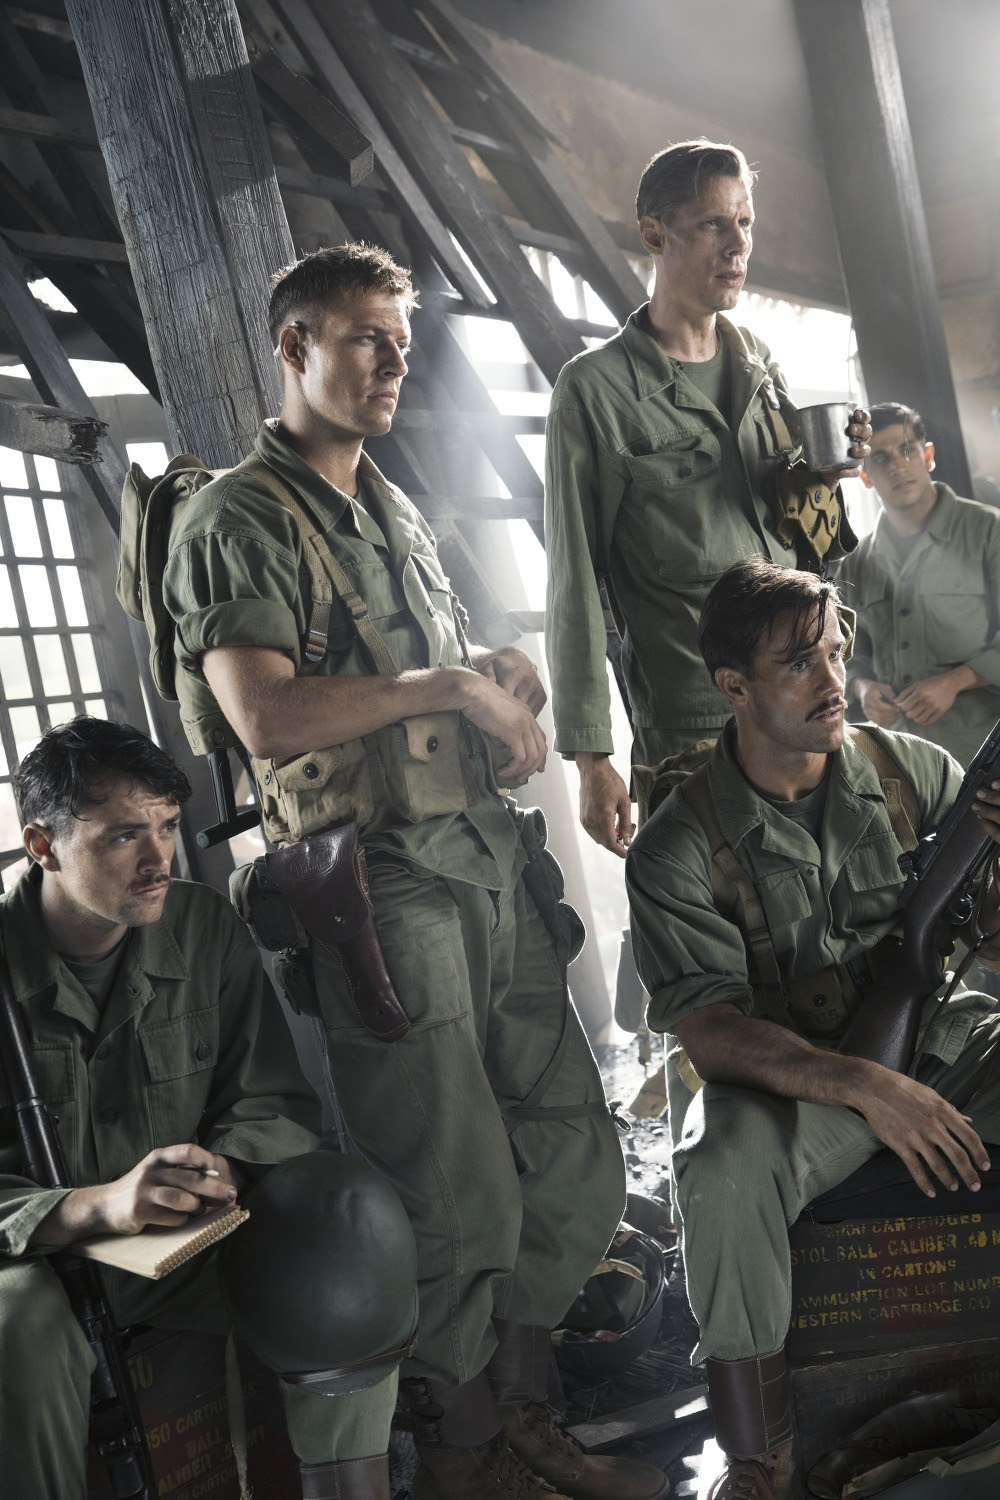 "(L-R) James Pinnick (Jacob Warner), Smitty Ryker (Luke Bracey), Andy Walker aka ""Ghoul"" (Goran Kleut), Milt Zane aka ""Hollywood"" (Luke Pegler) and Vito Rinelli (Firass Dirani) in HACKSAW RIDGE. (Photo by Mark Rogers / Lionsgate)."